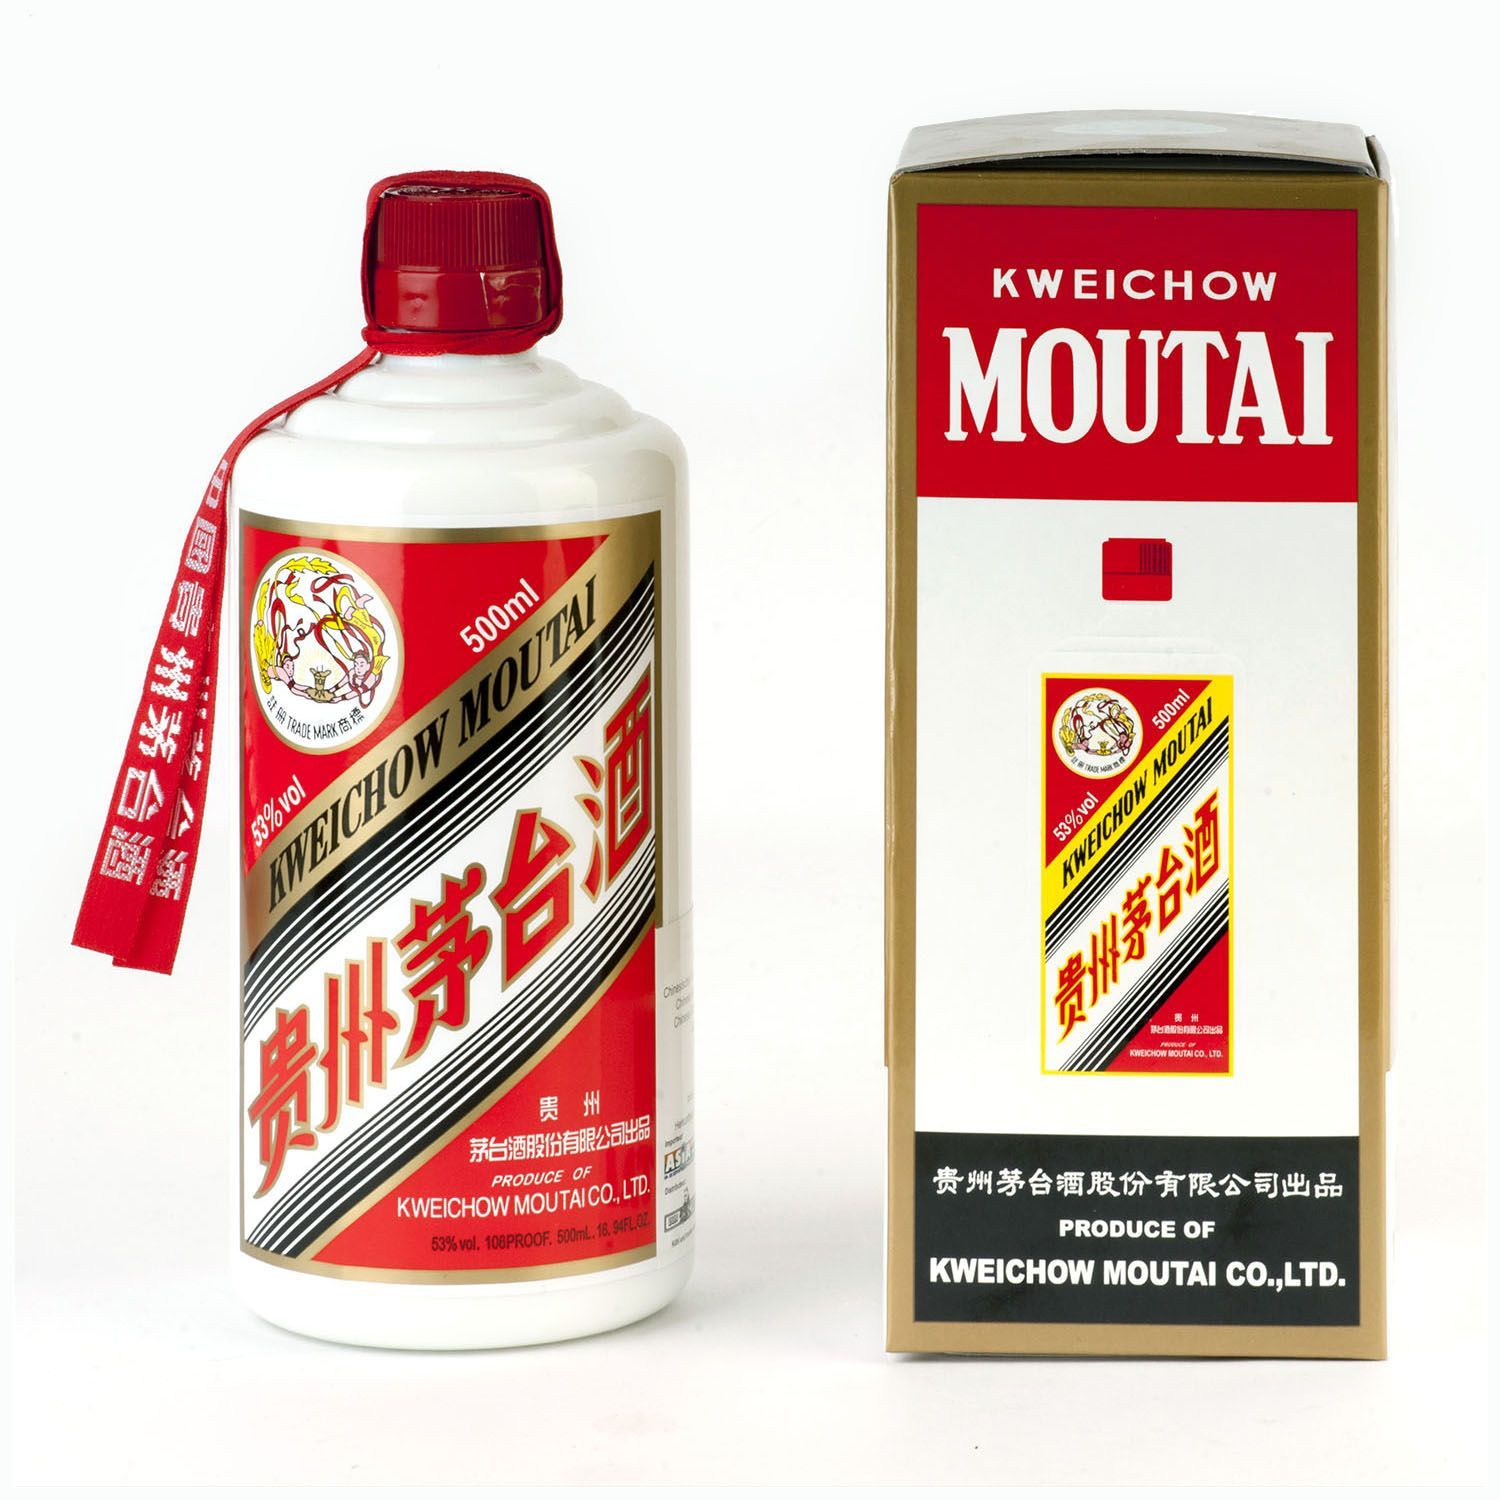 Image Result For Moutai Rice Wine Daru App Daru Daruapp Delivery Drinkresponsibly Enjoyresponsibly Alcholdelivery L Liquor Liquor Delivery Spice Cafe